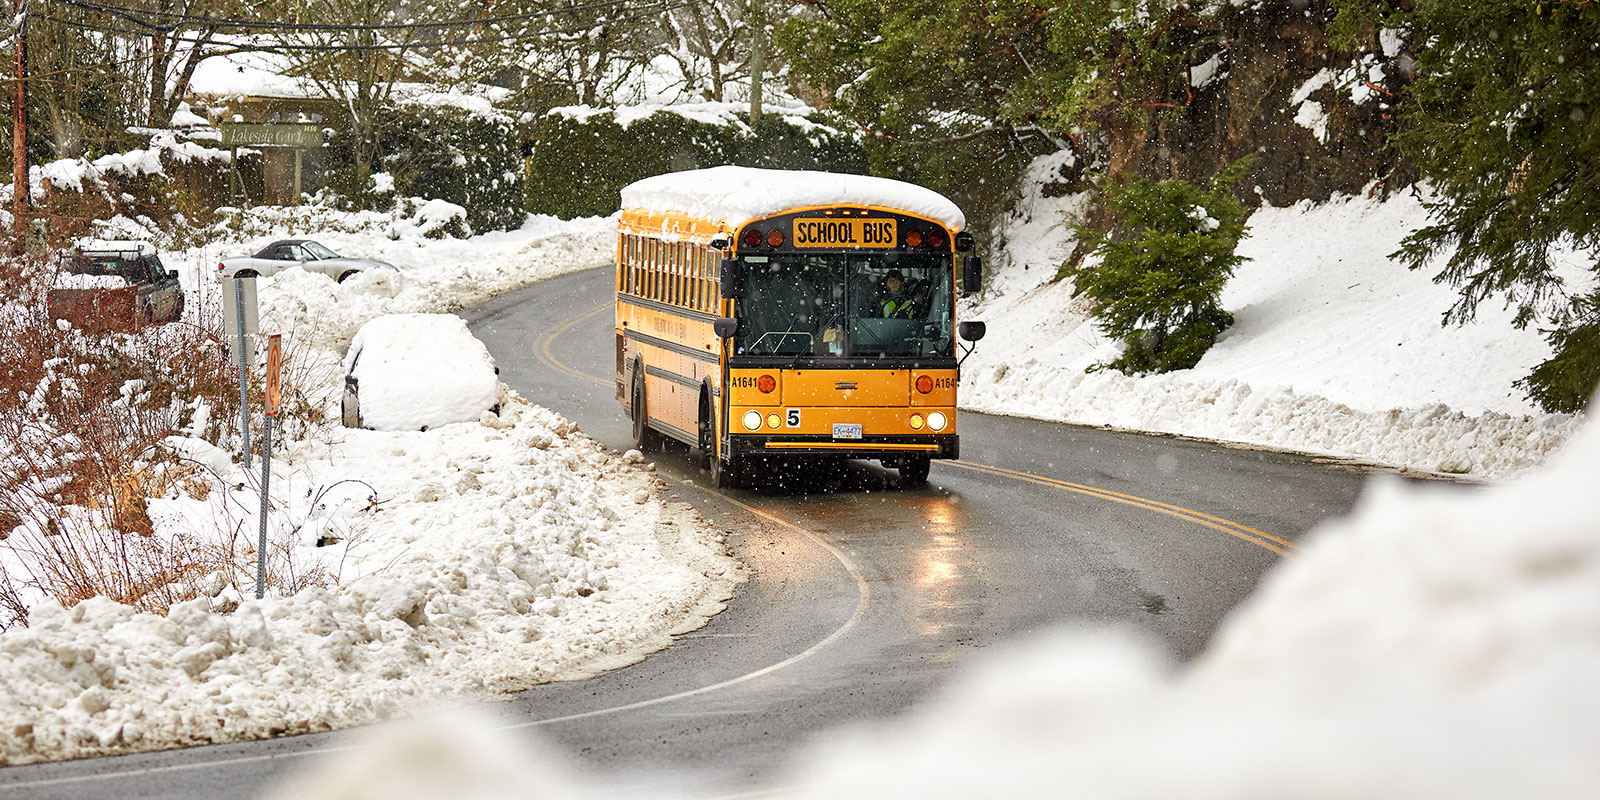 SD64 Bus 5 on Salt Spring Island running Main Roads Only